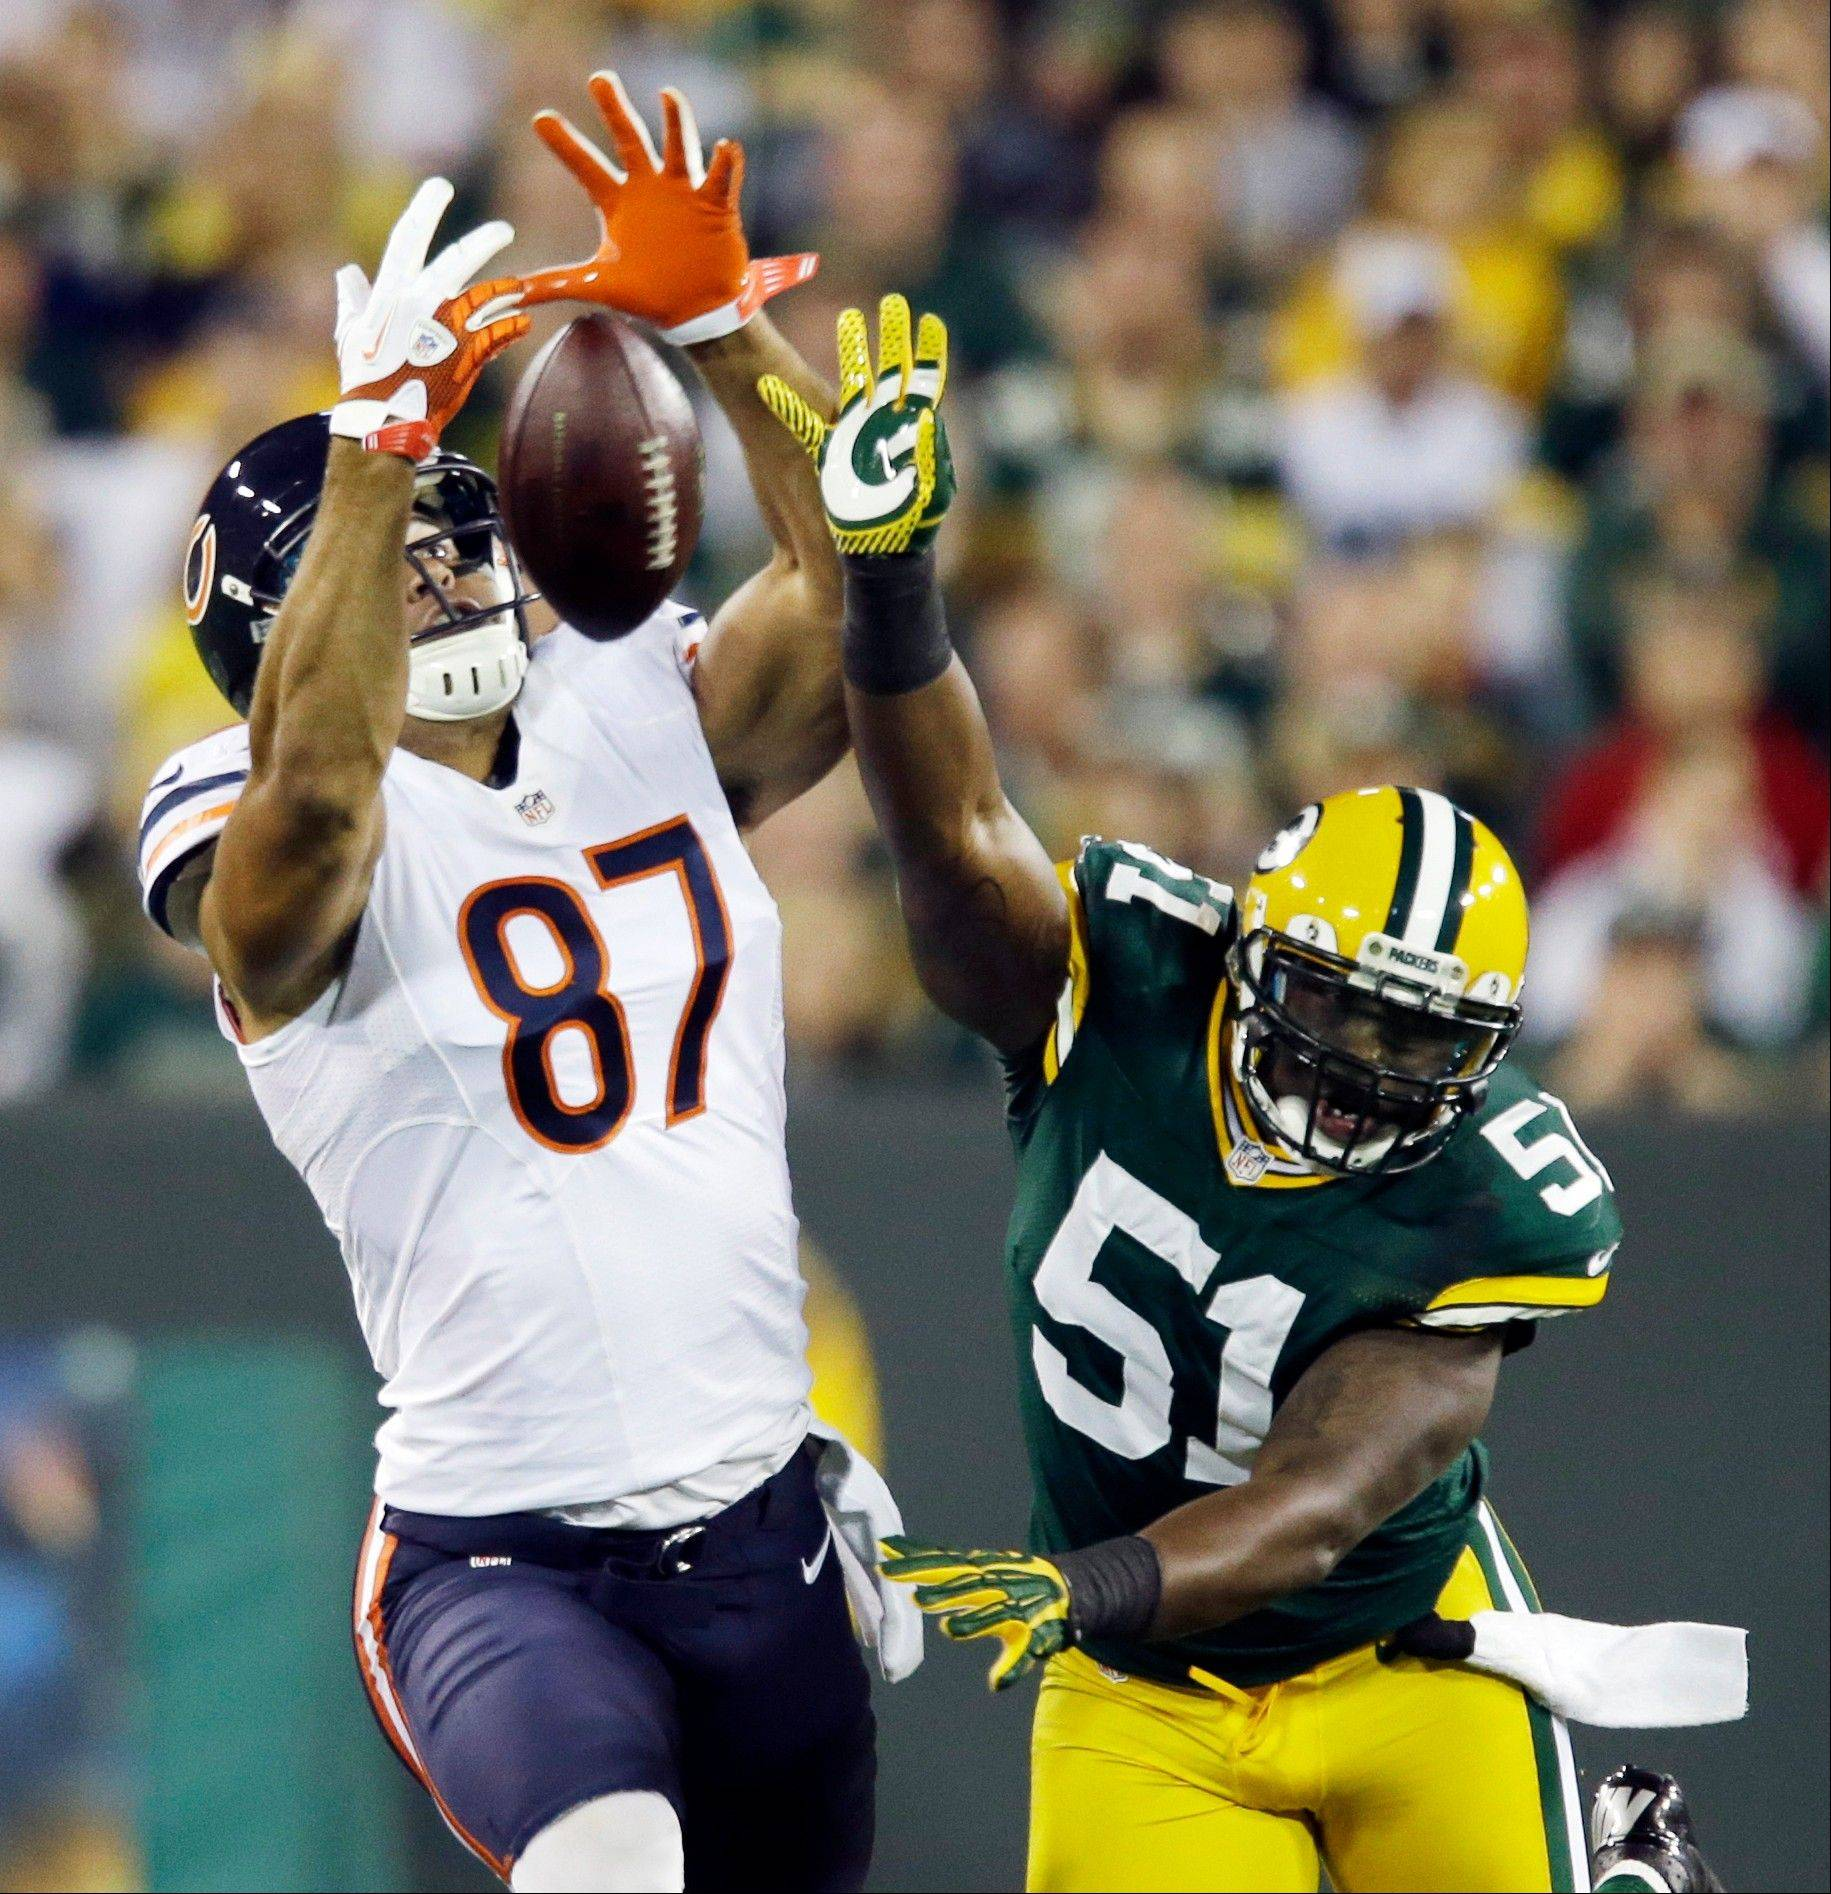 Green Bay Packers' D.J. Smith (51) breaks up a pass intended for the Bears' Kellen Davis (87) during the first half earlier this season in Green Bay, Wis.